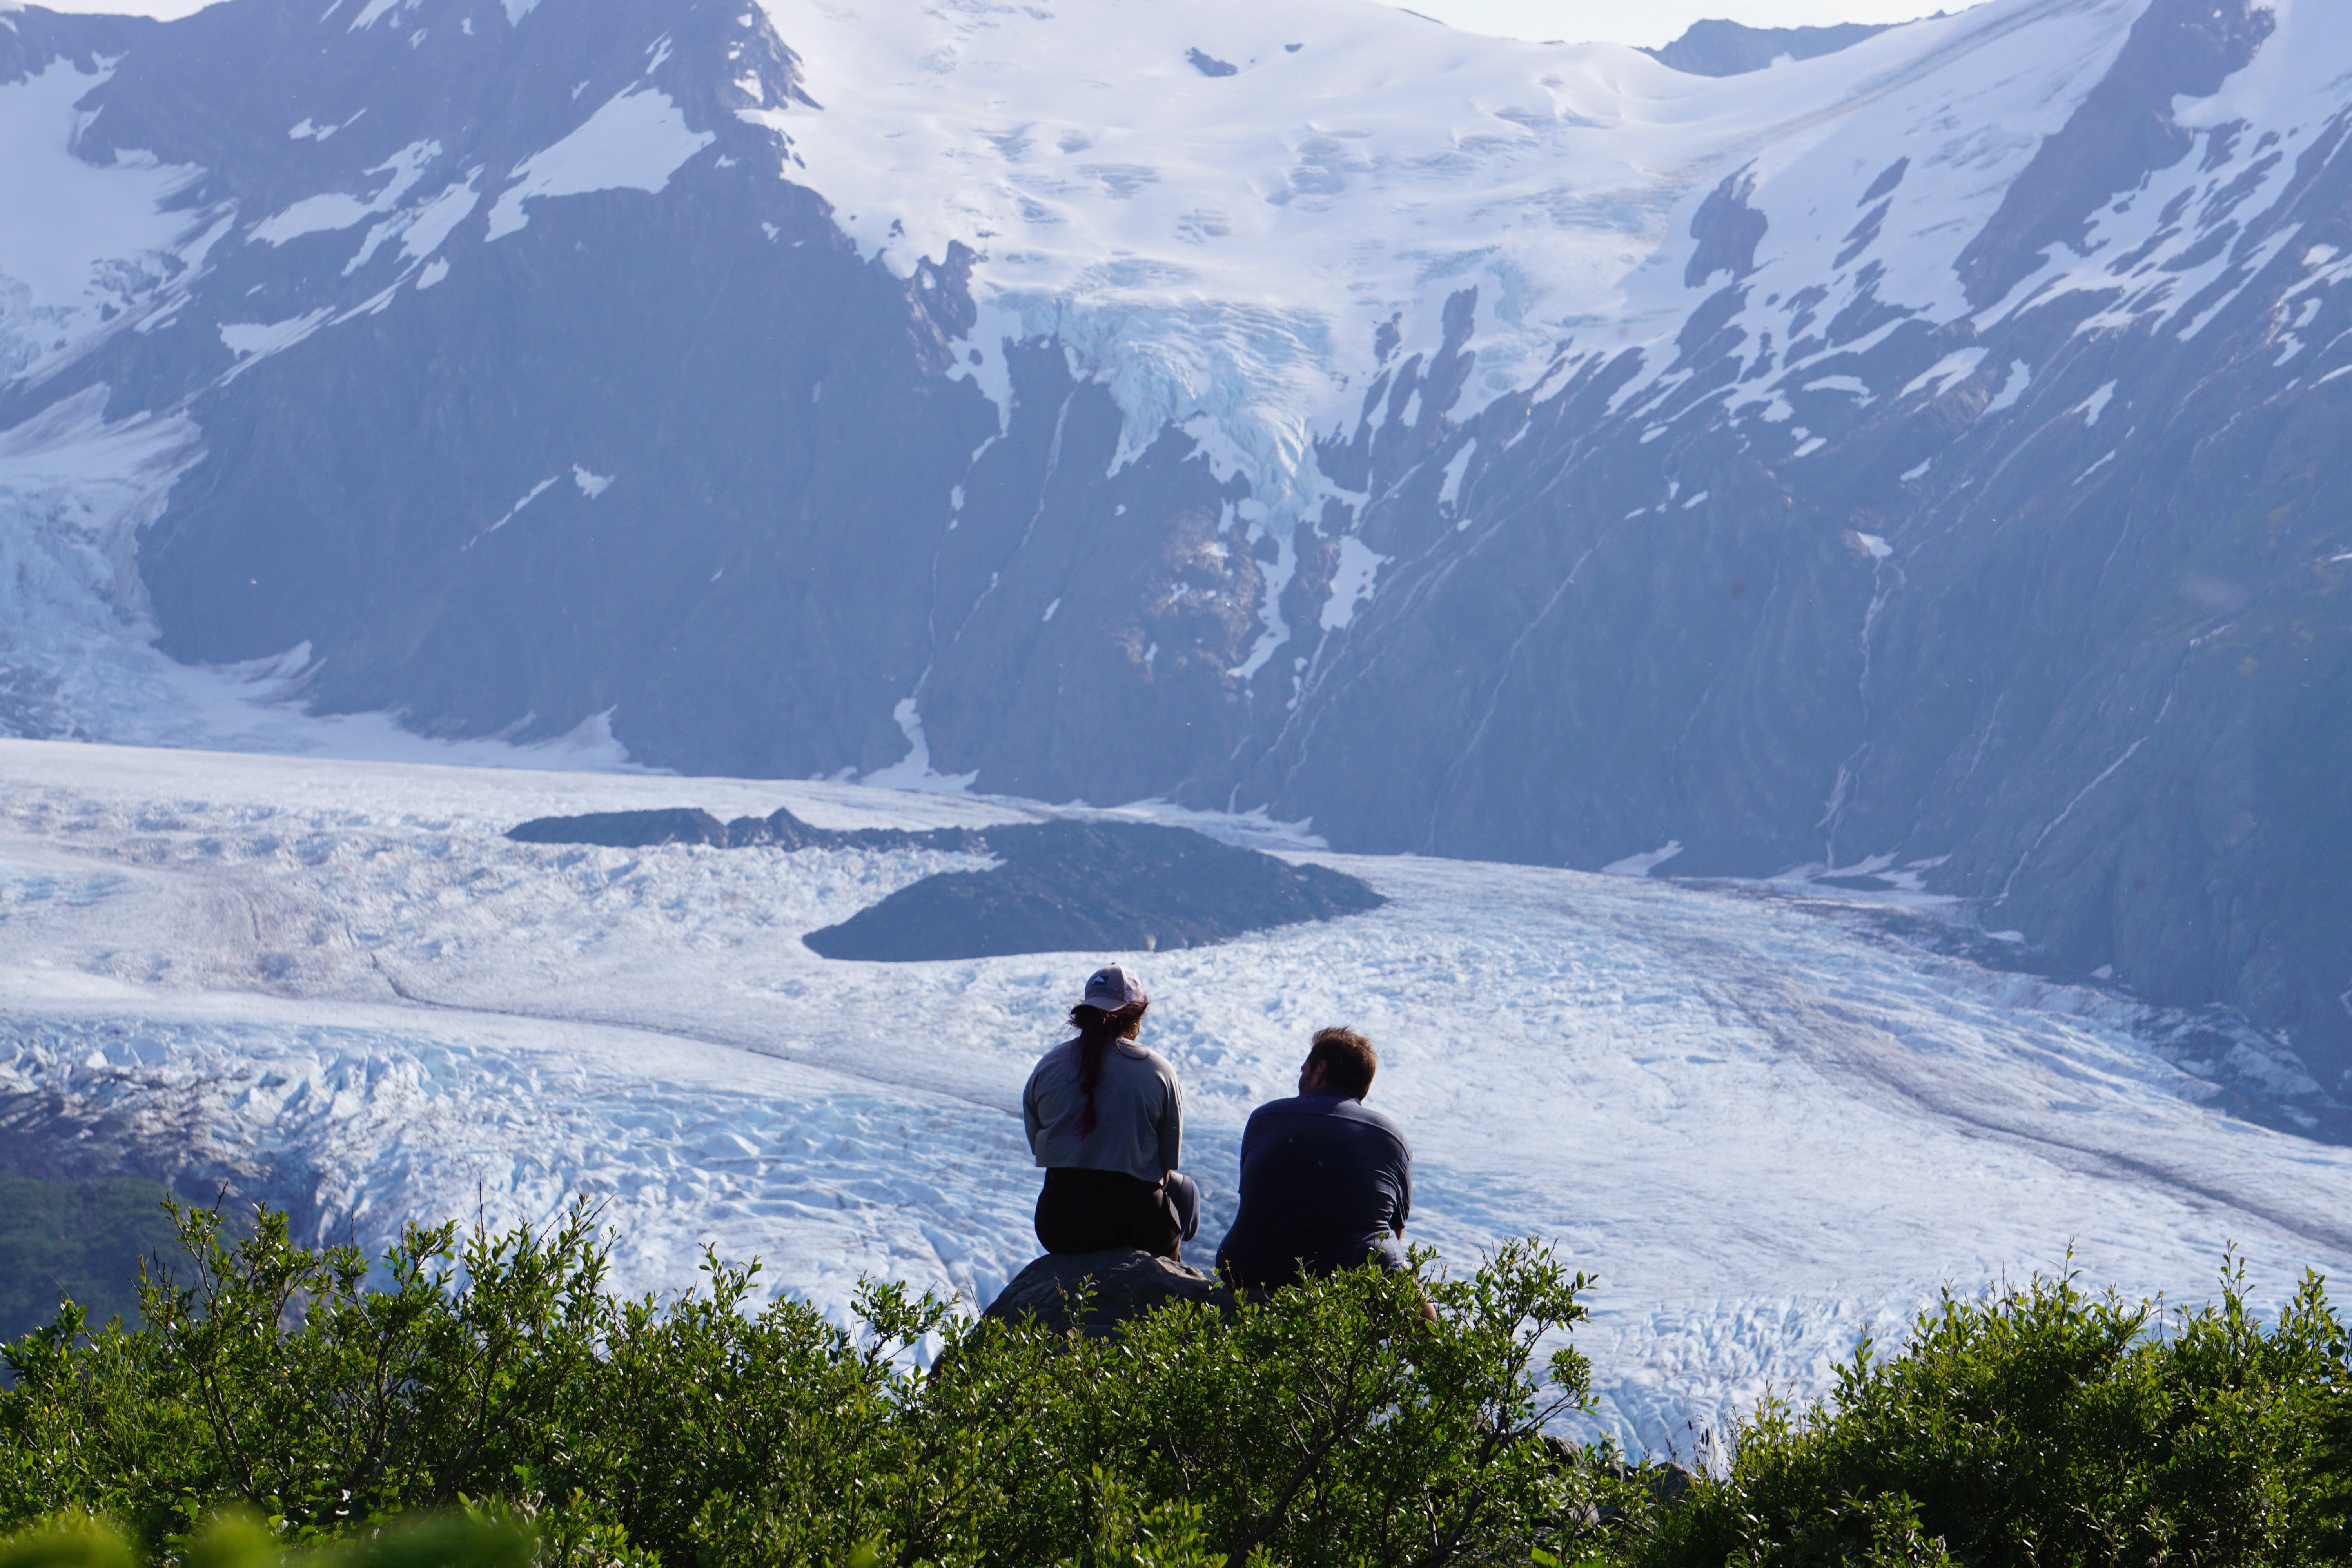 Portage Glacier as seen from Portage Pass, as hikers look on, in Chugach National Forest in Alaska, U.S. July 7, 2020. Picture taken July 7, 2020. REUTERS/Yereth Rosen - RC2XEL97K9LM